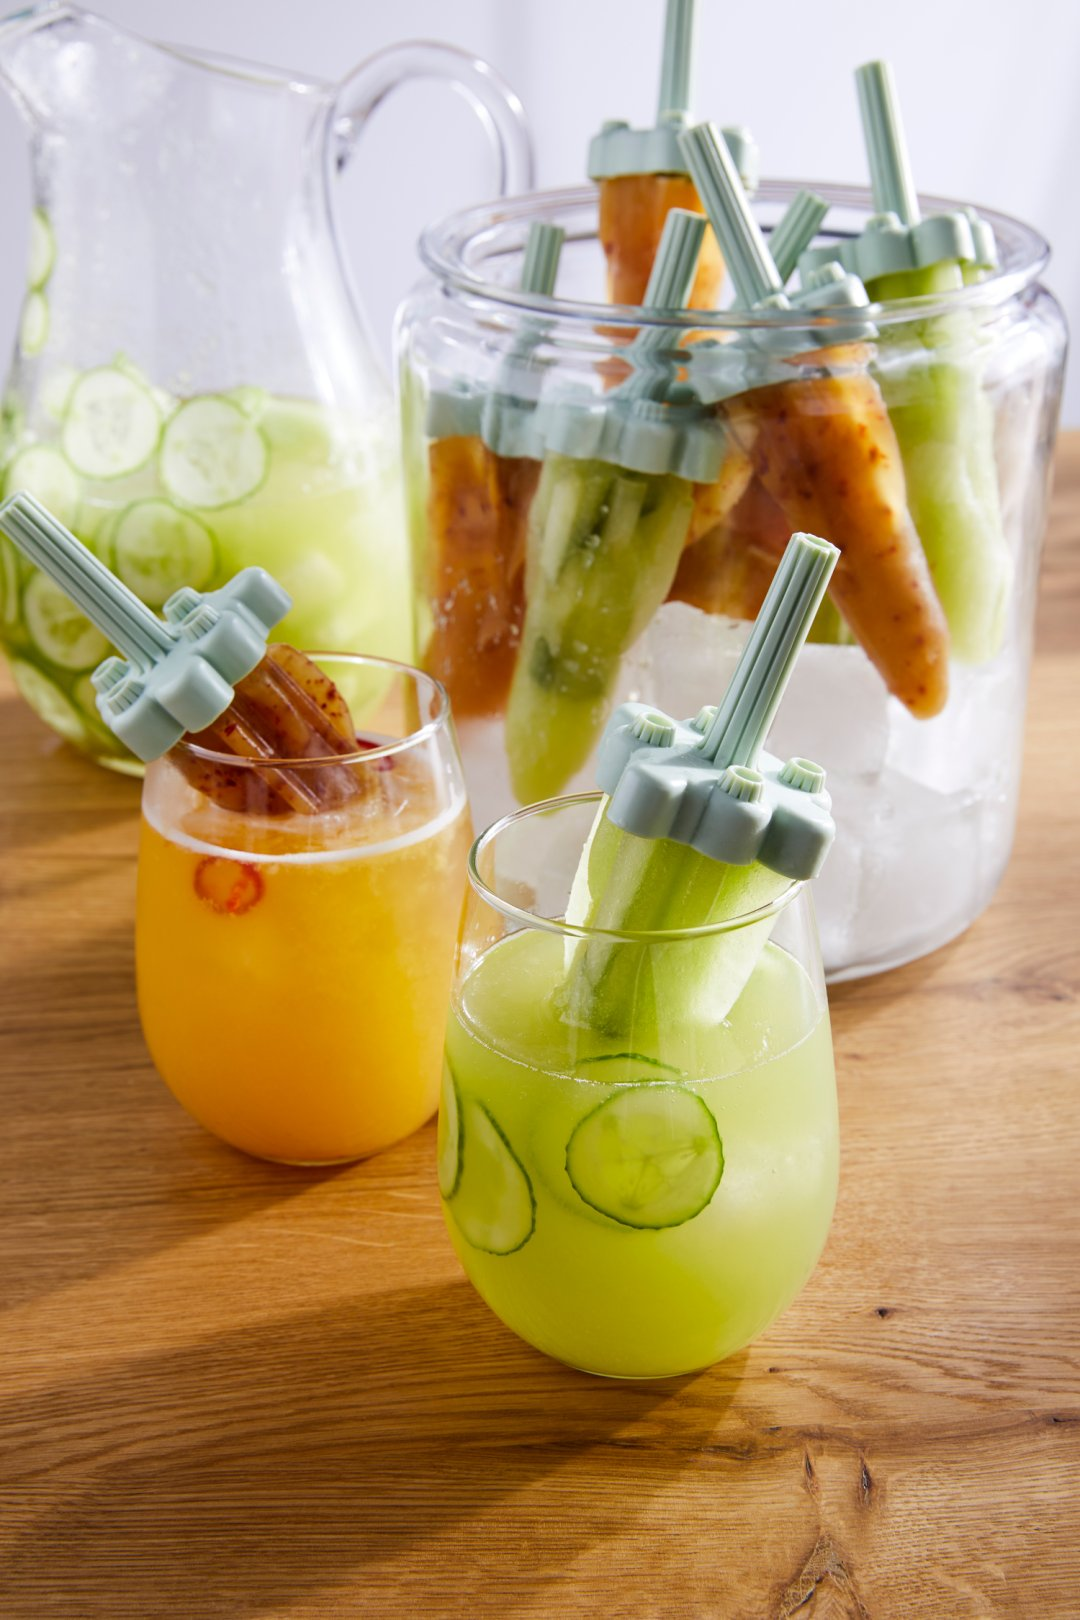 Honeydew and Cucumber margarita popsicles in stemless wine glasses